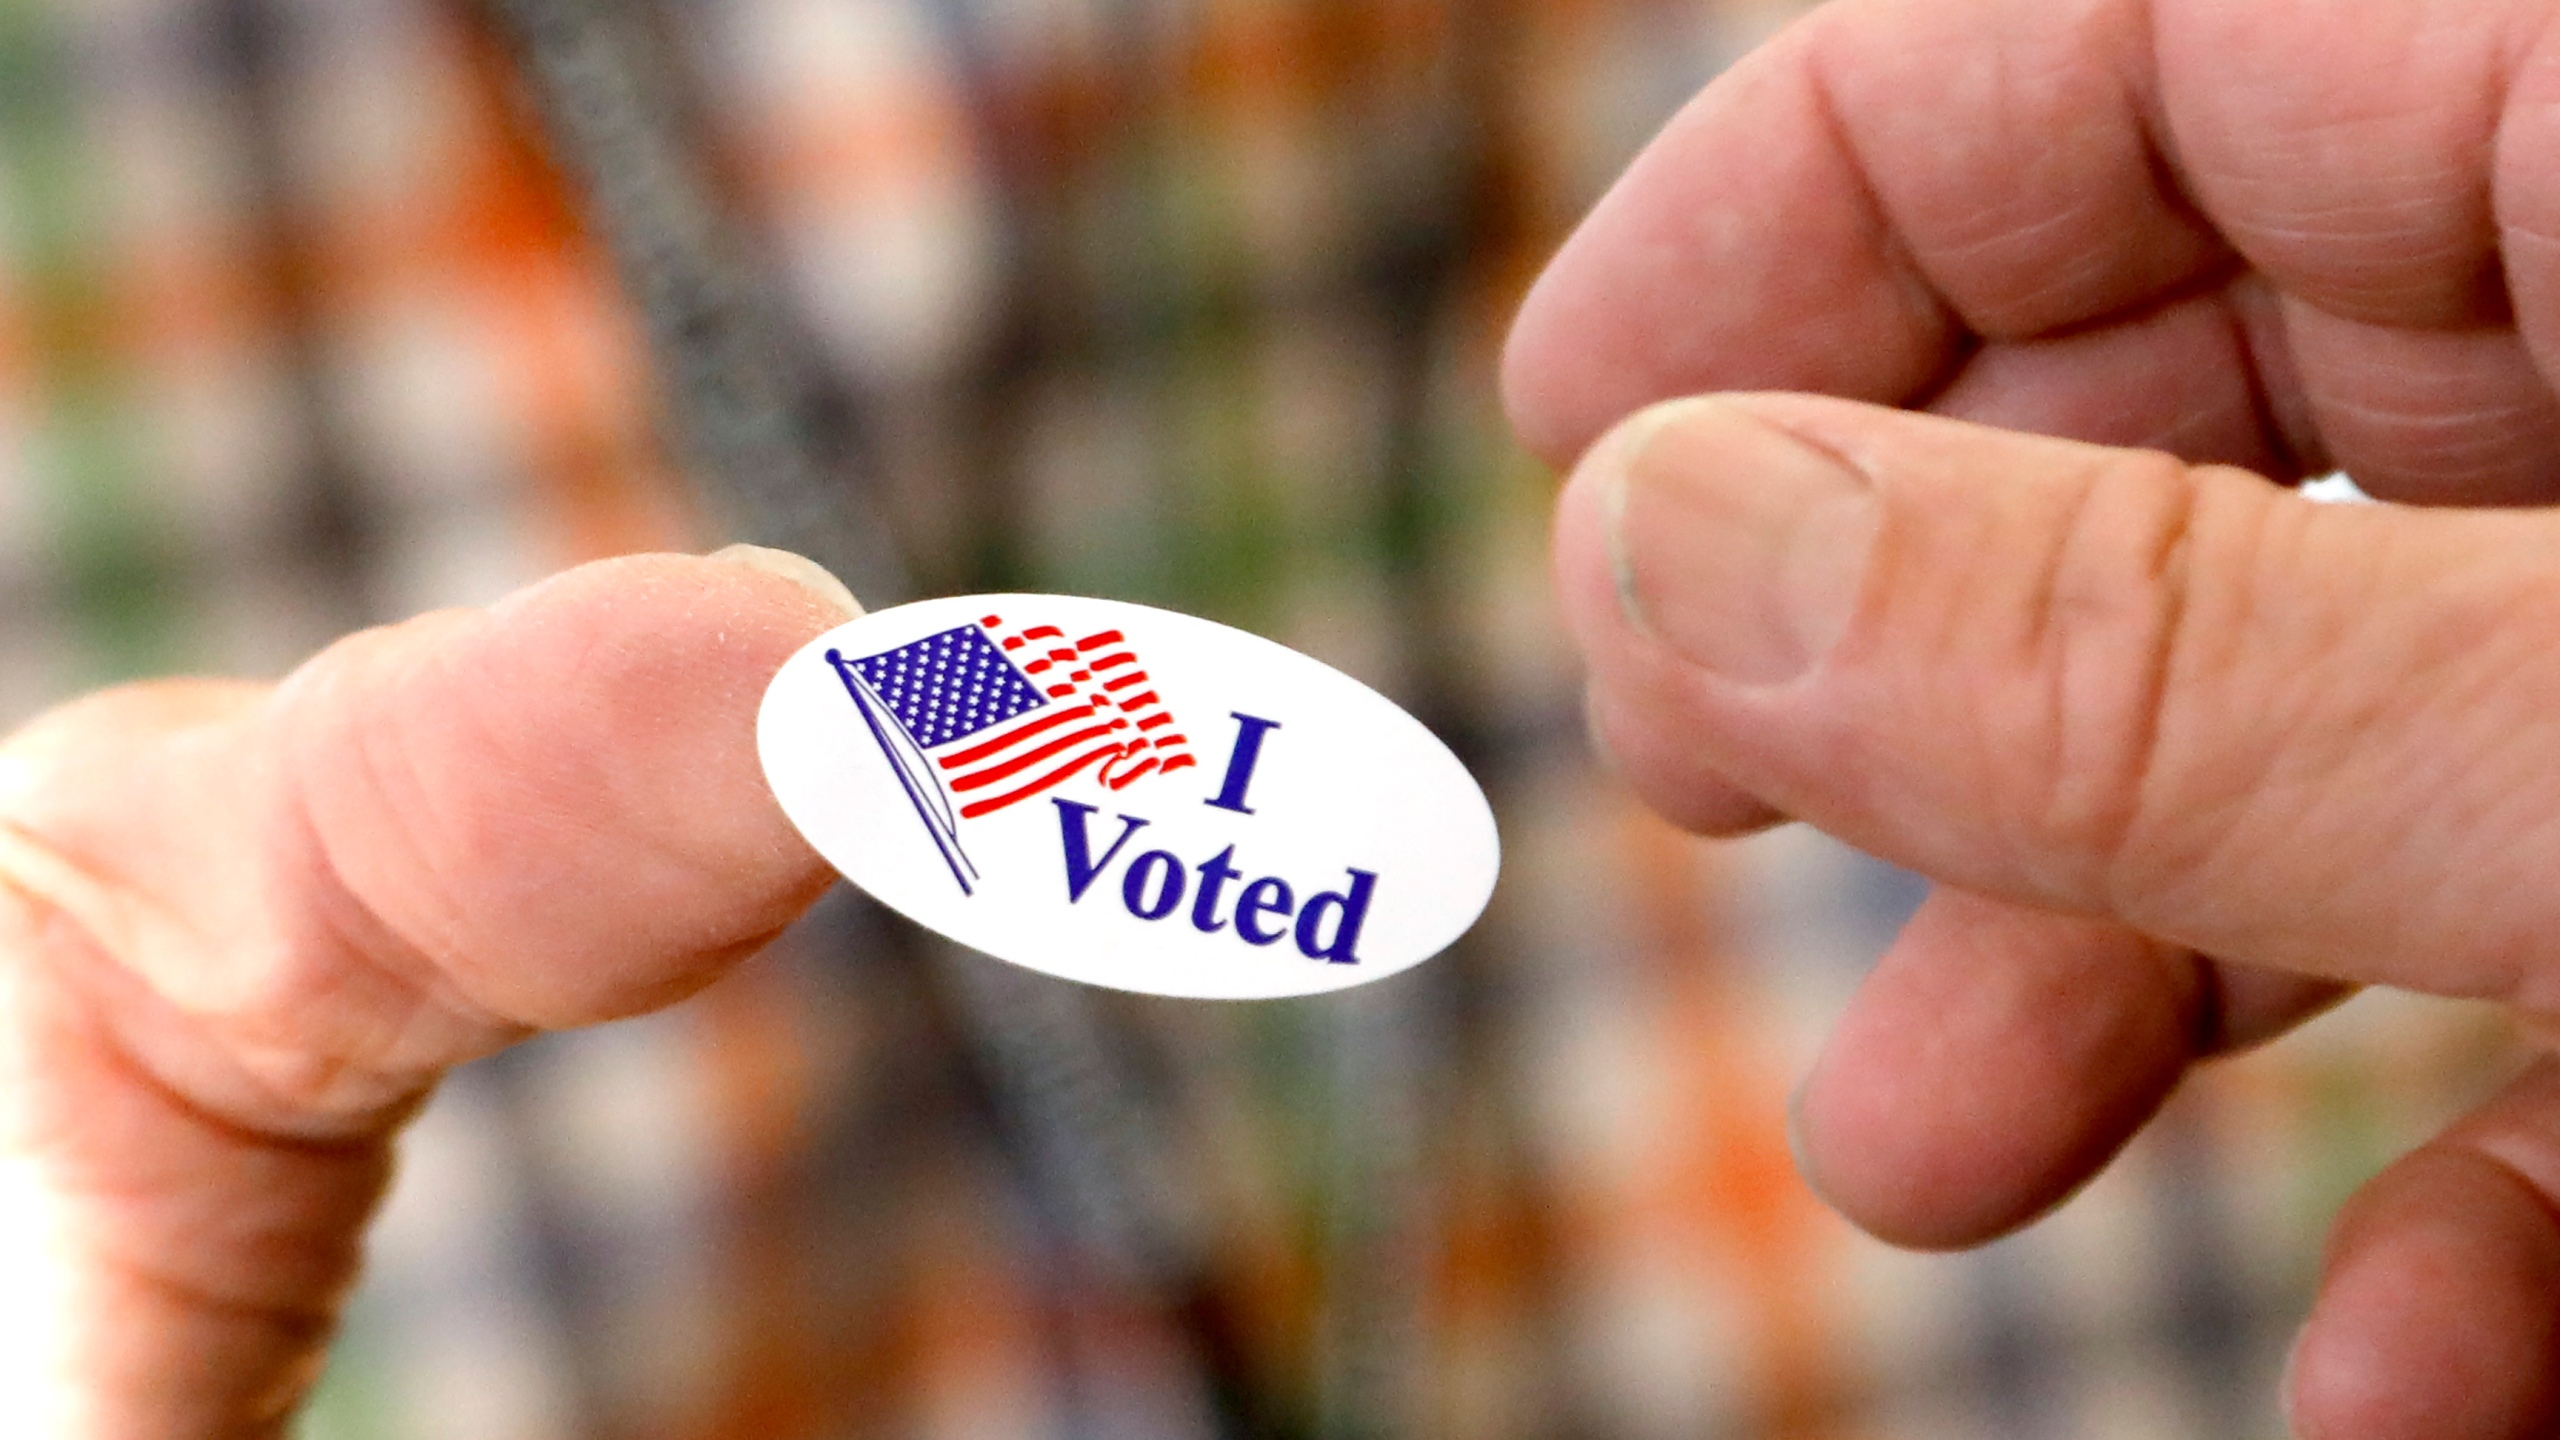 """FILE - In this Tuesday, Nov. 5, 2019 file photo, a poll worker offers a voter an """"I Voted"""" sticker after casting a ballot in Ridgeland, Miss. (AP Photo/Rogelio V. Solis)"""